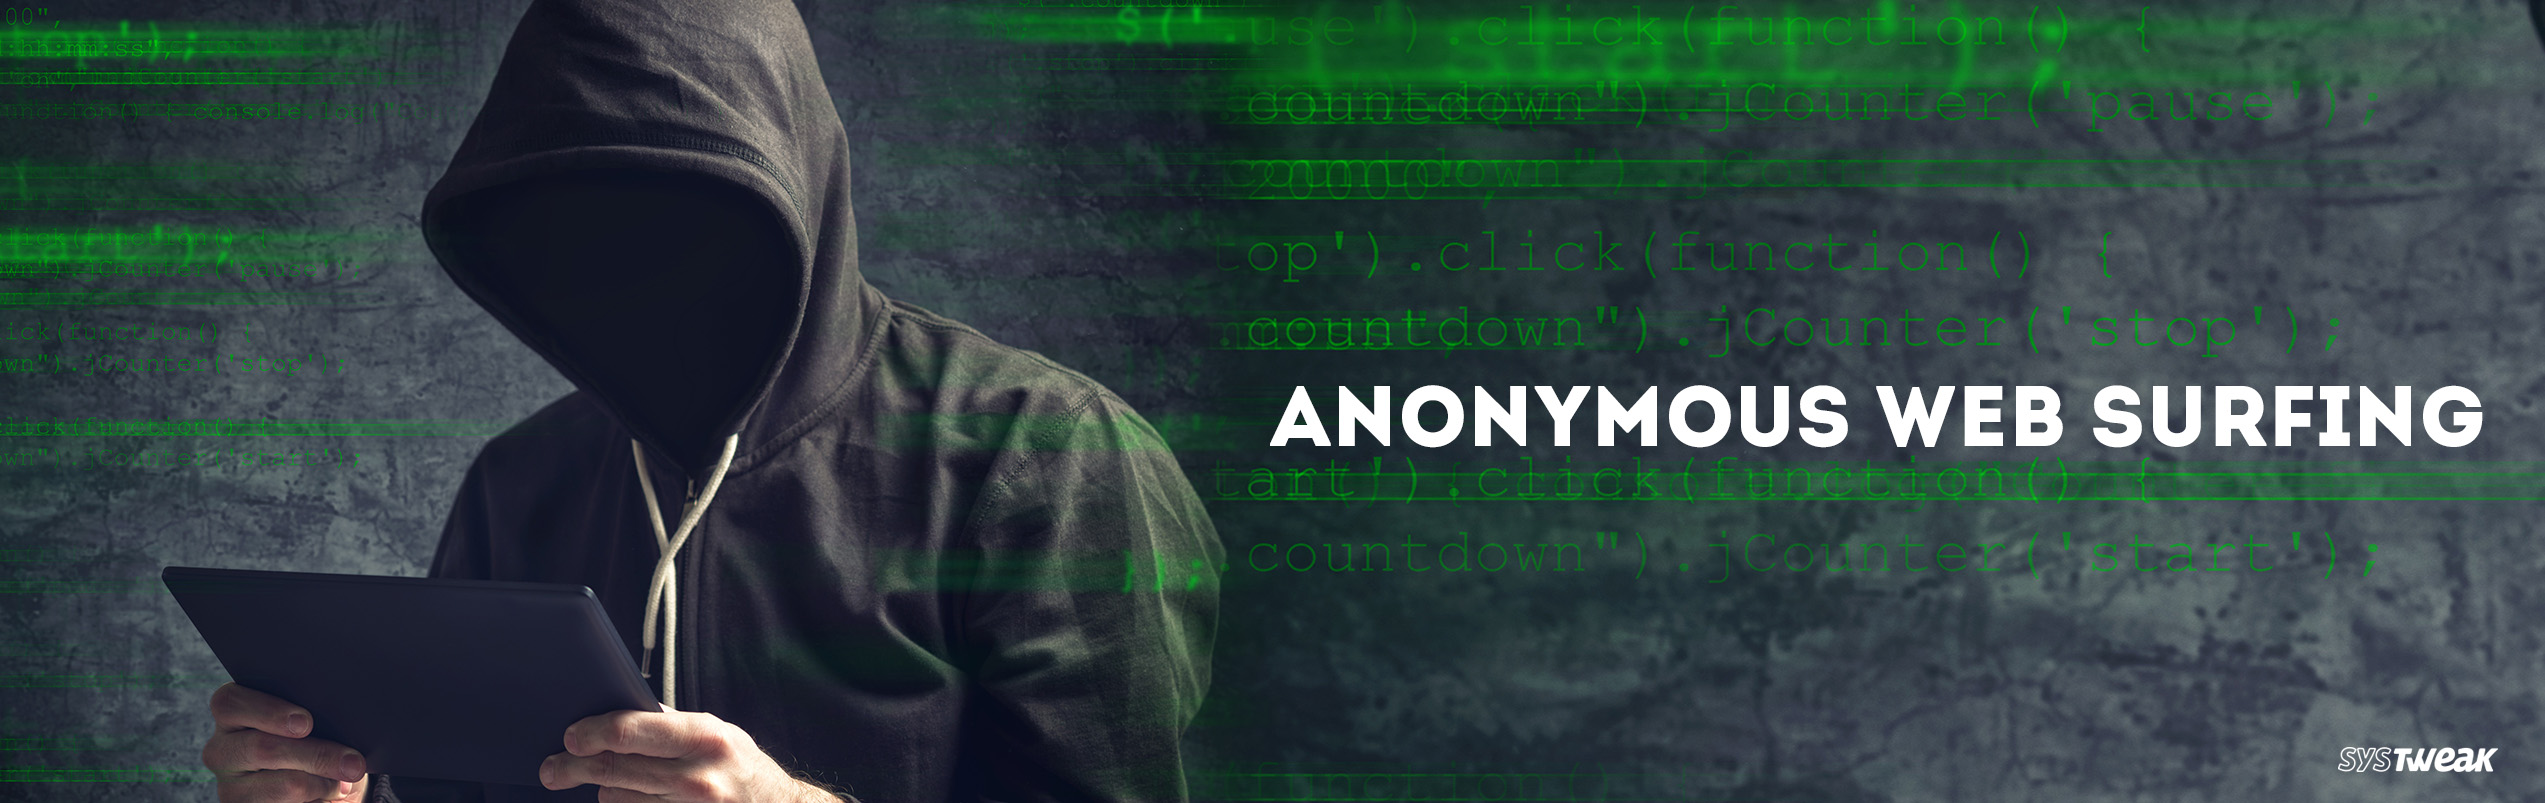 How To Browse Internet Anonymously